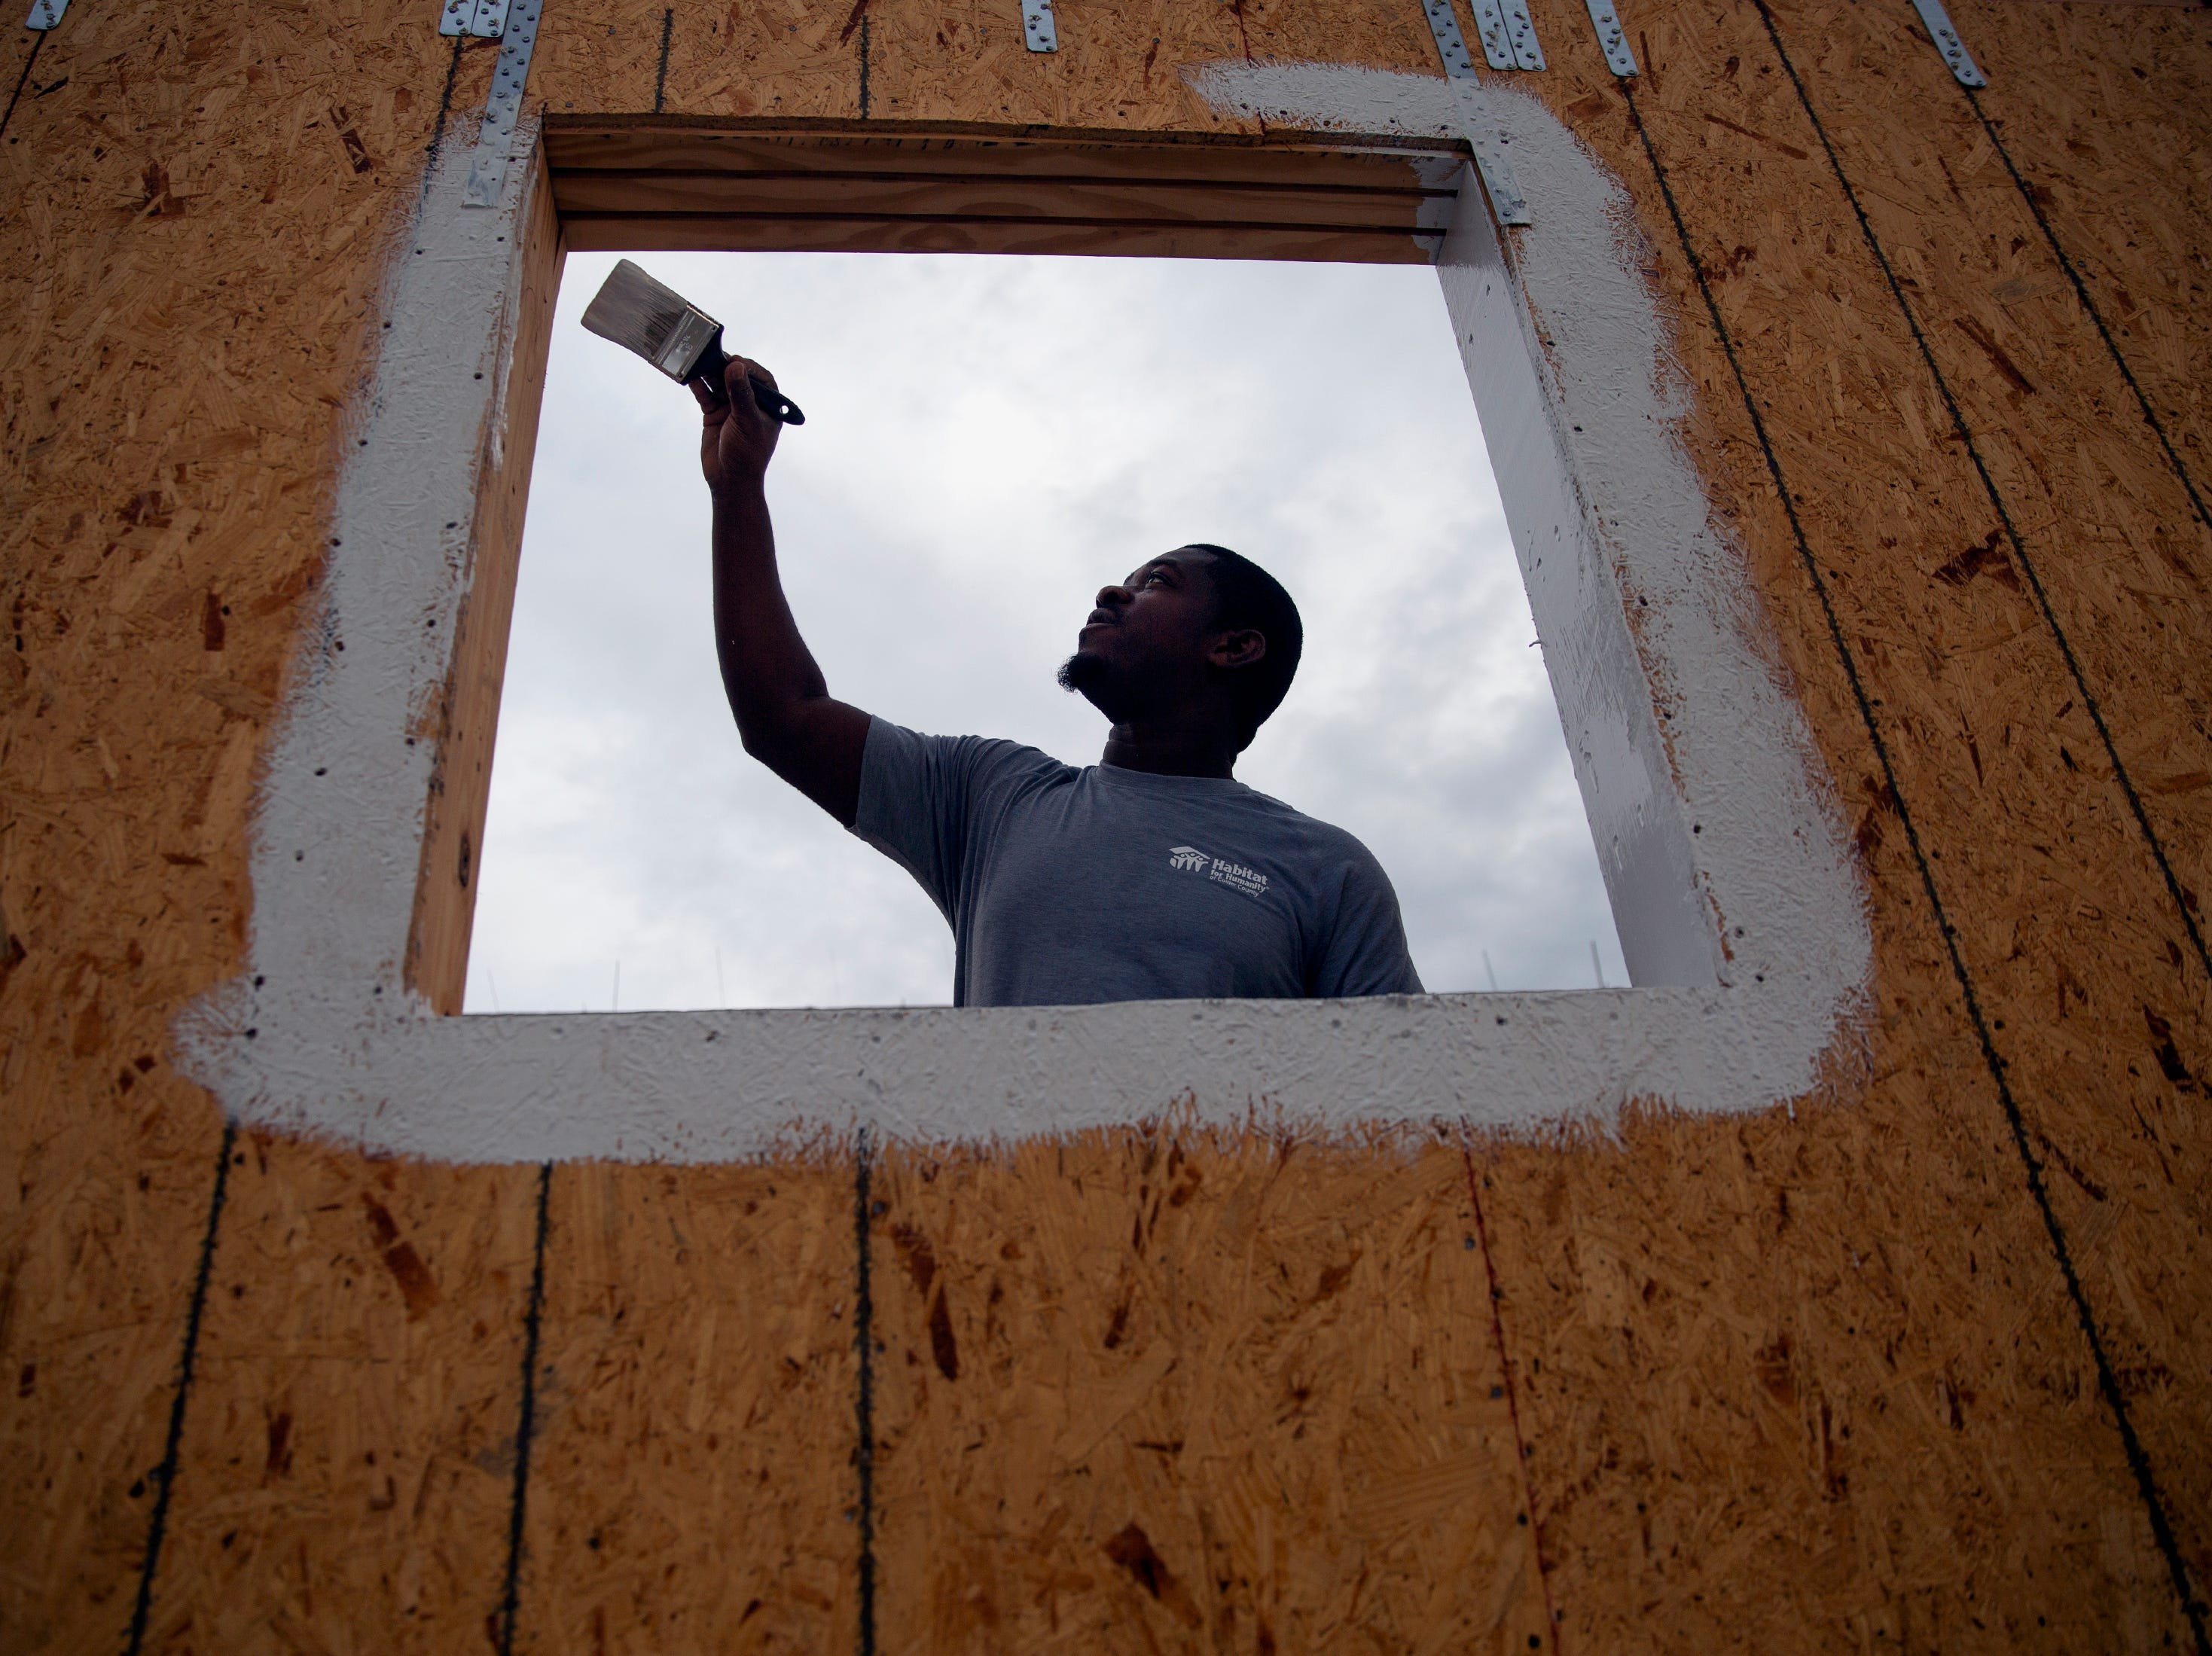 Billy Witte, a site supervisor for Habitat for Humanity of Collier County, applies a protective coating on a window  Saturday, Jan. 5, 2019, in the Dockside neighborhood in East Naples.